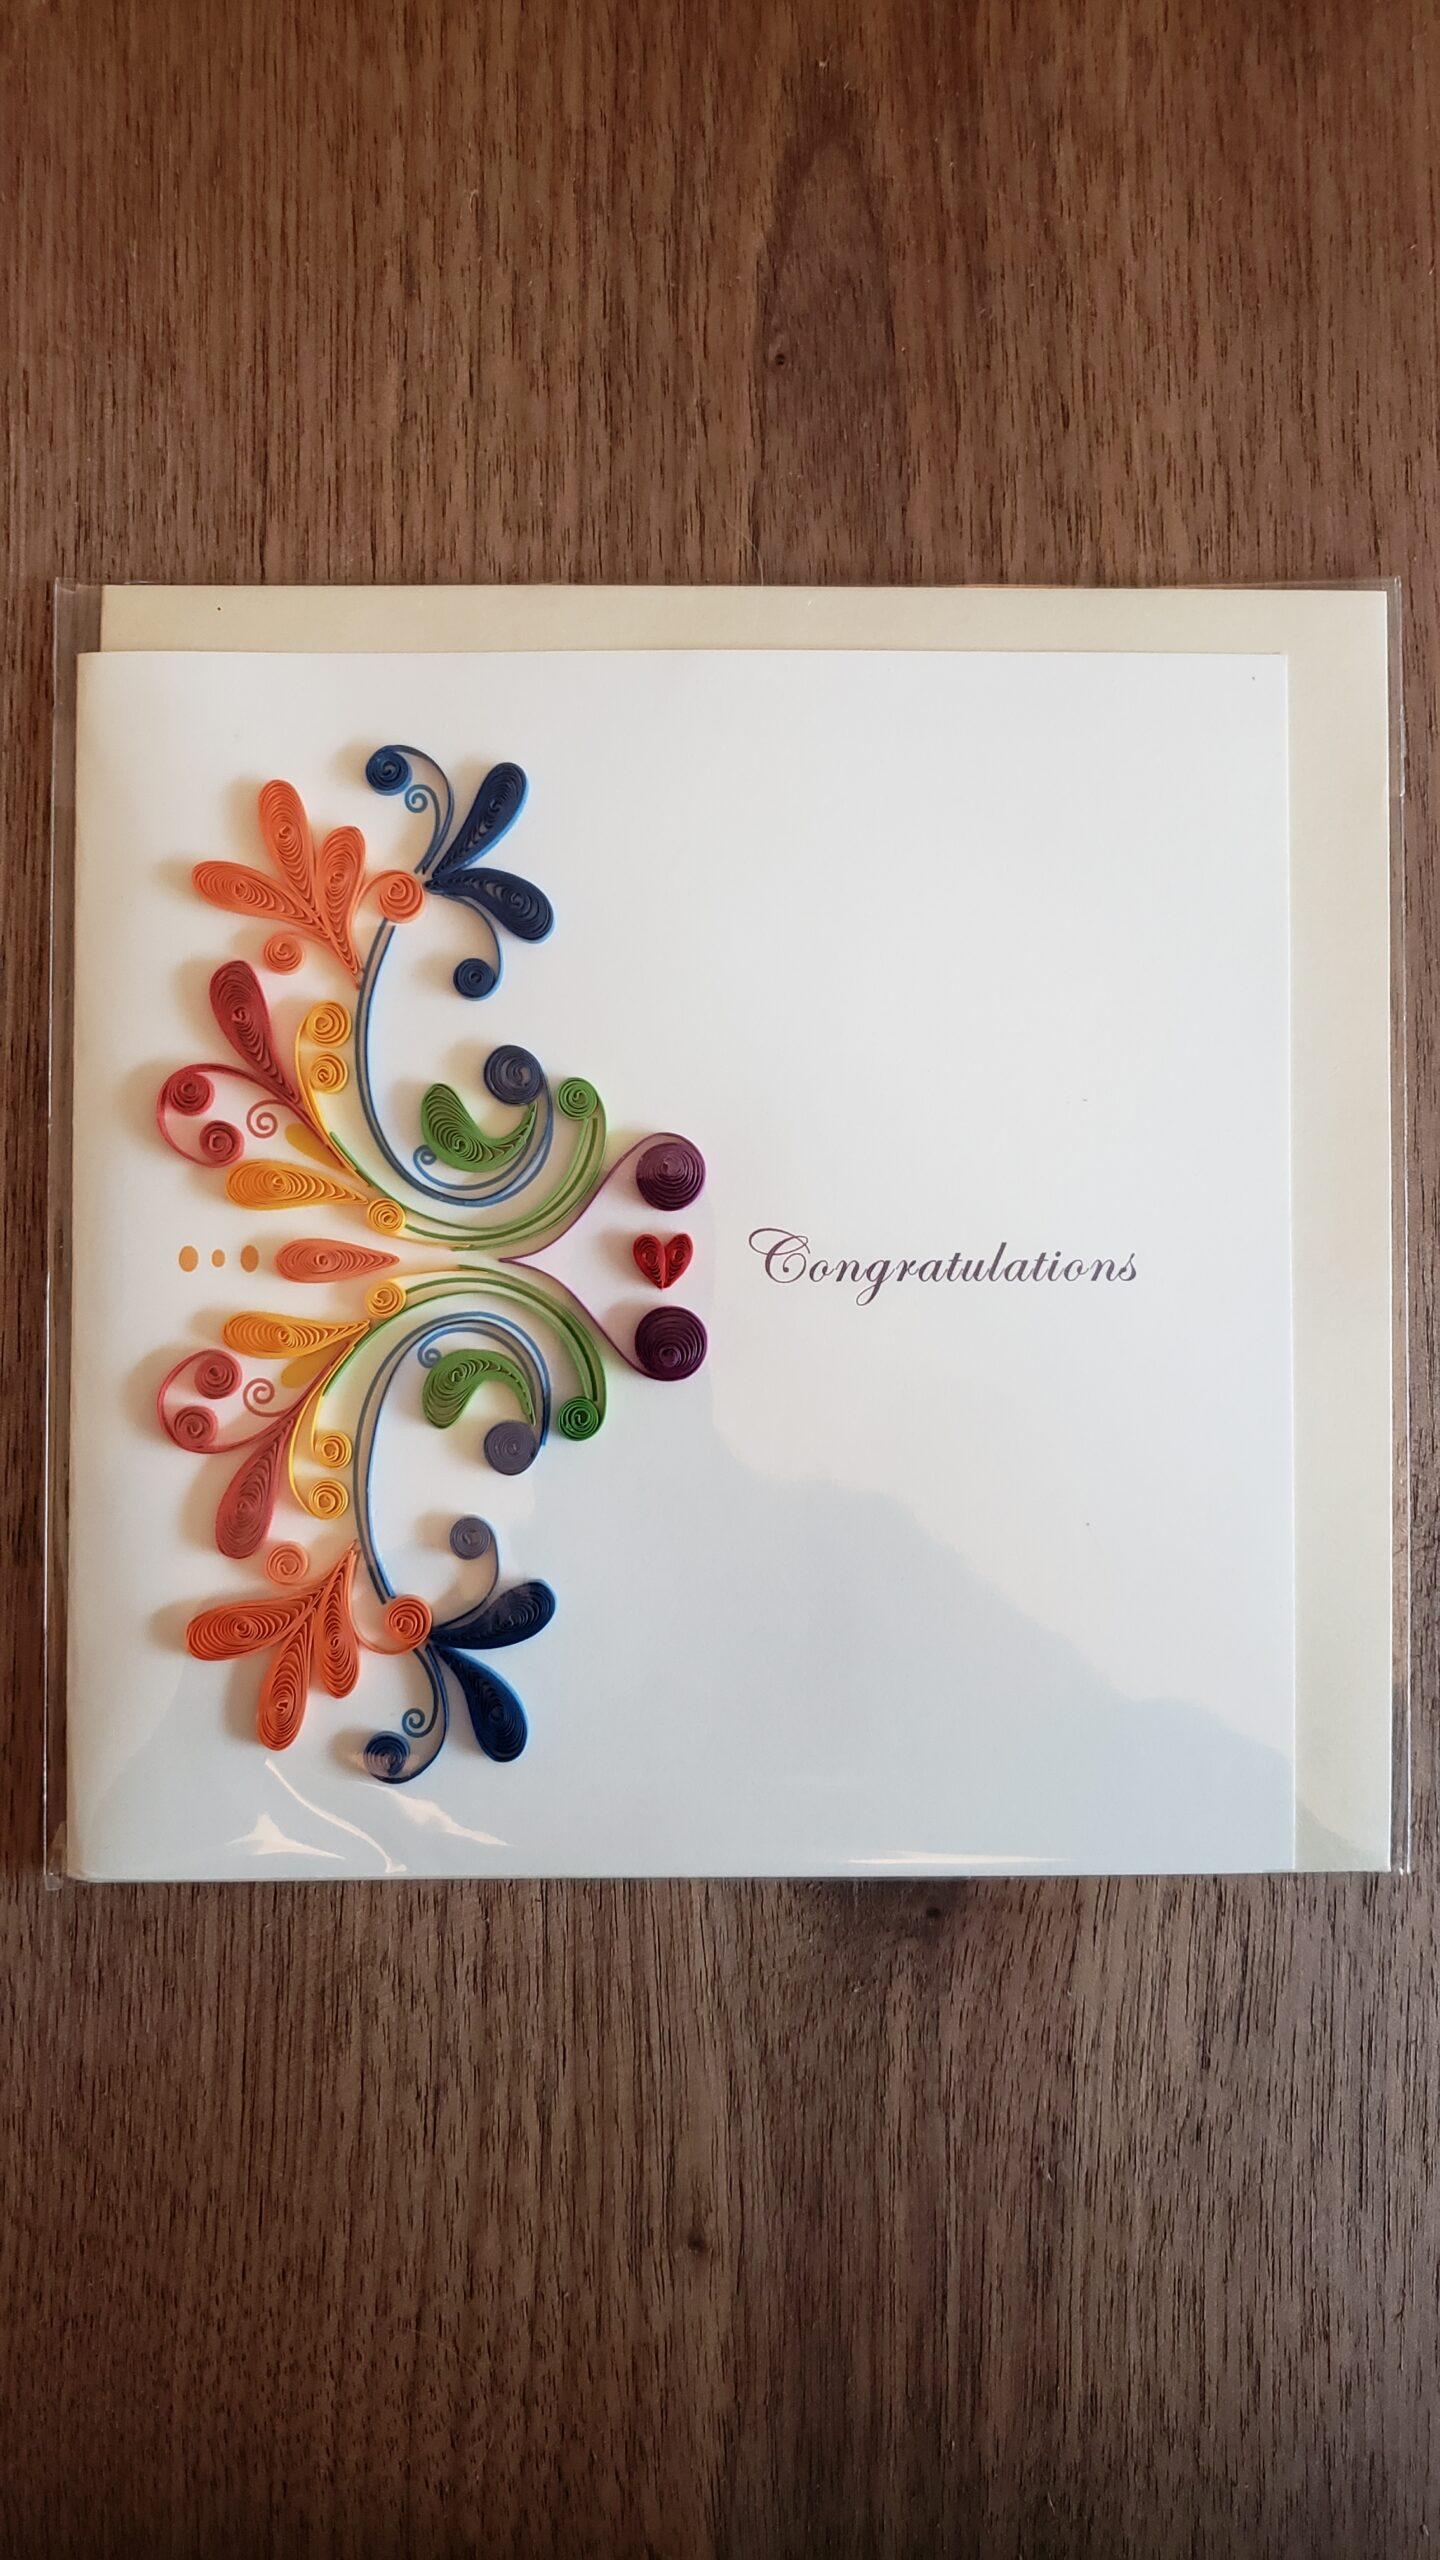 Rainbow Swirl Congratulations Card 6 in. x 6 in.